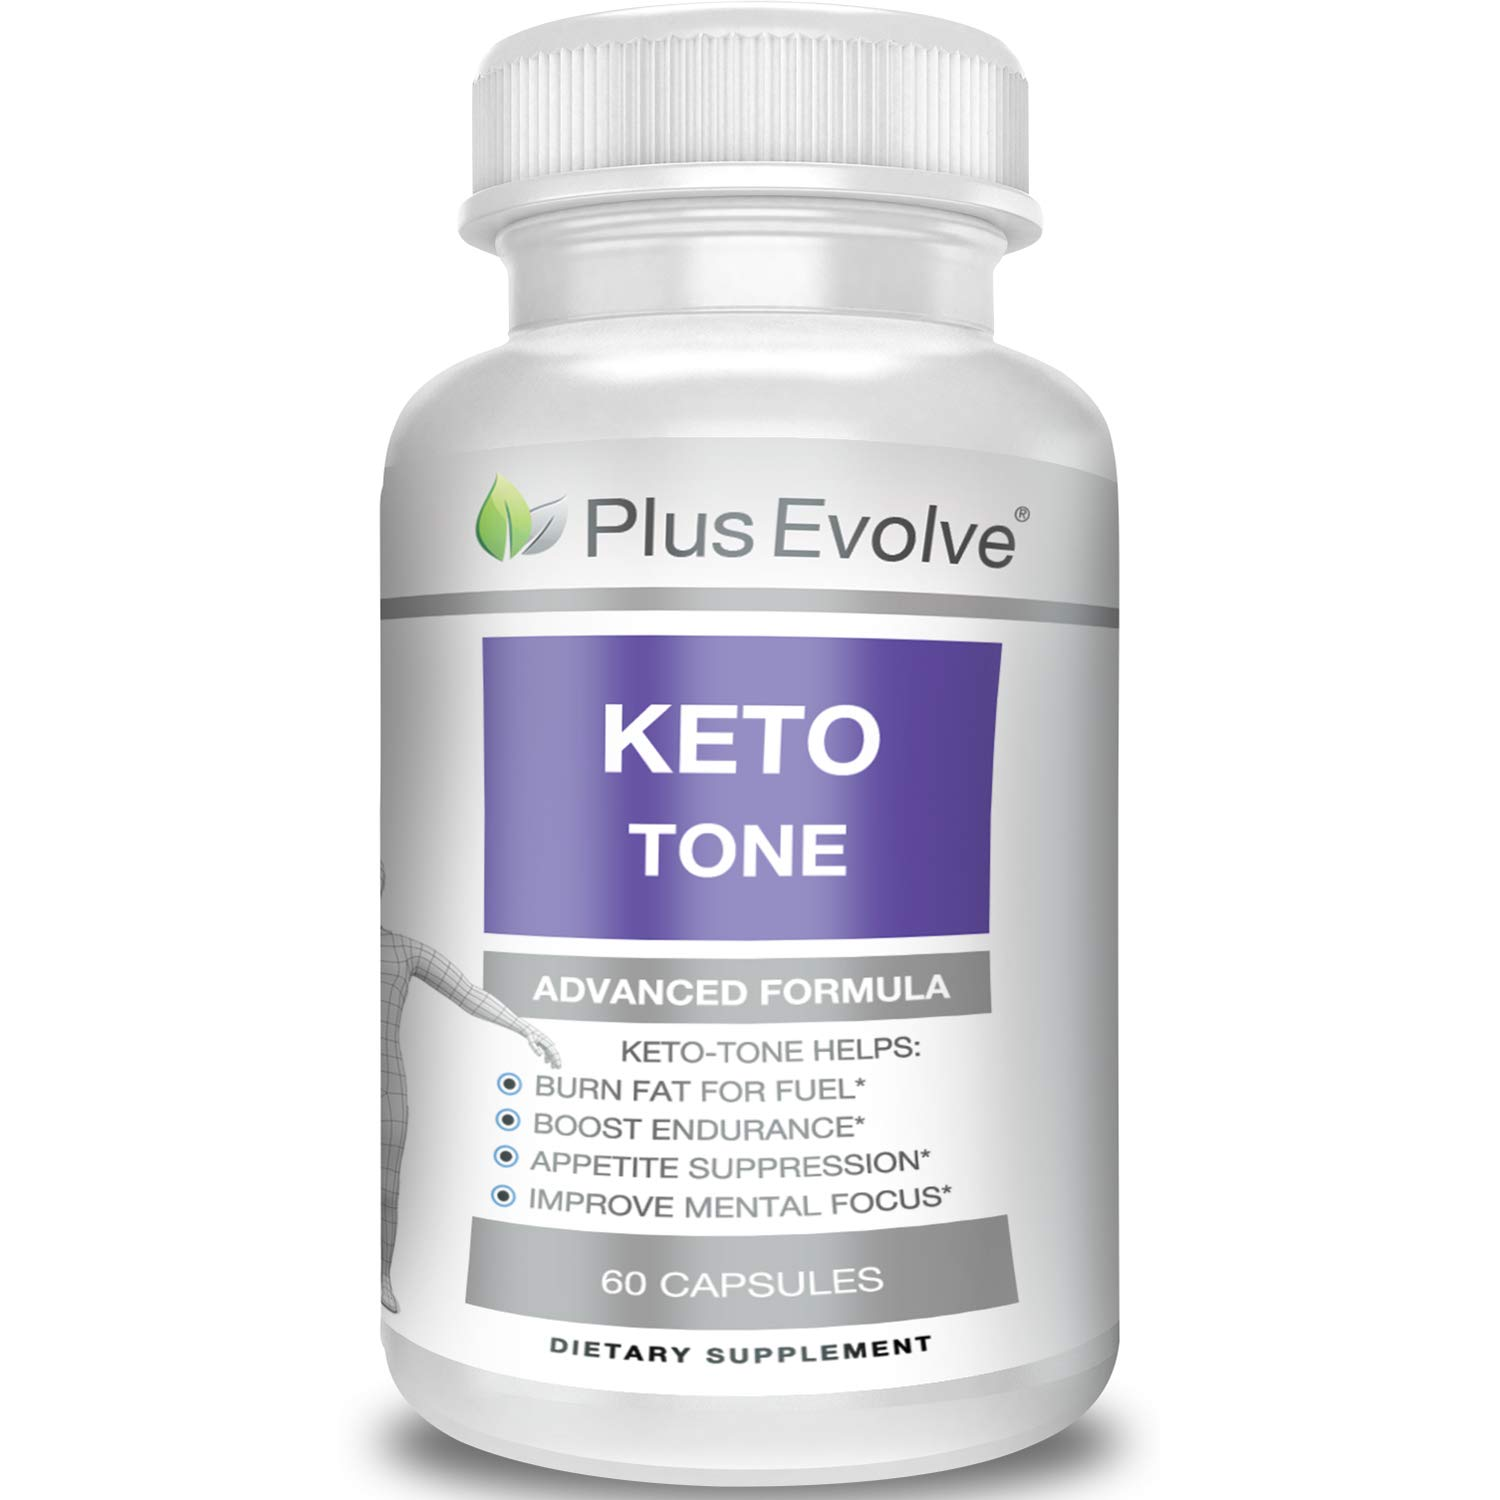 Keto Tone by Plus Evolve | Weight Loss Supplement, Fat Burner Pills, Extra Strength, Appetite Suppressant for Women and Men, Ketosis Weight Loss Pills, Carb Blocker for Ketogenic Diet, 60 ct